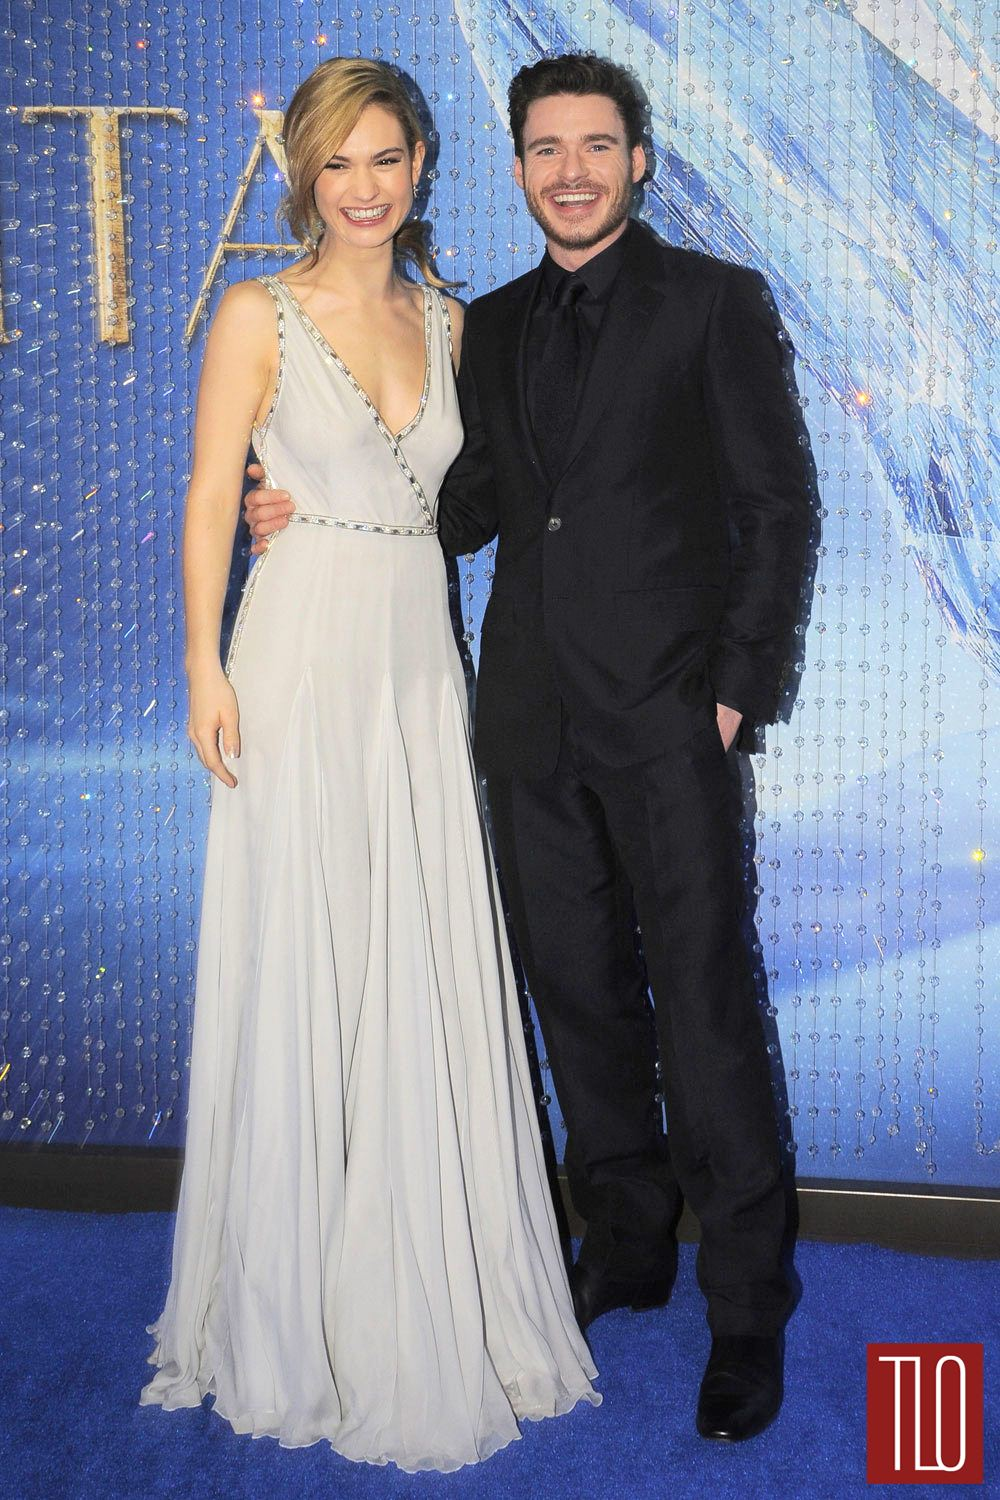 Lily-James-Richard-Madden-Cinderella-Mexico-City-Movie-Premiere-Red-Carpet-Fashion-Prada-Tom-Lorenzo-Site-TLO (1)